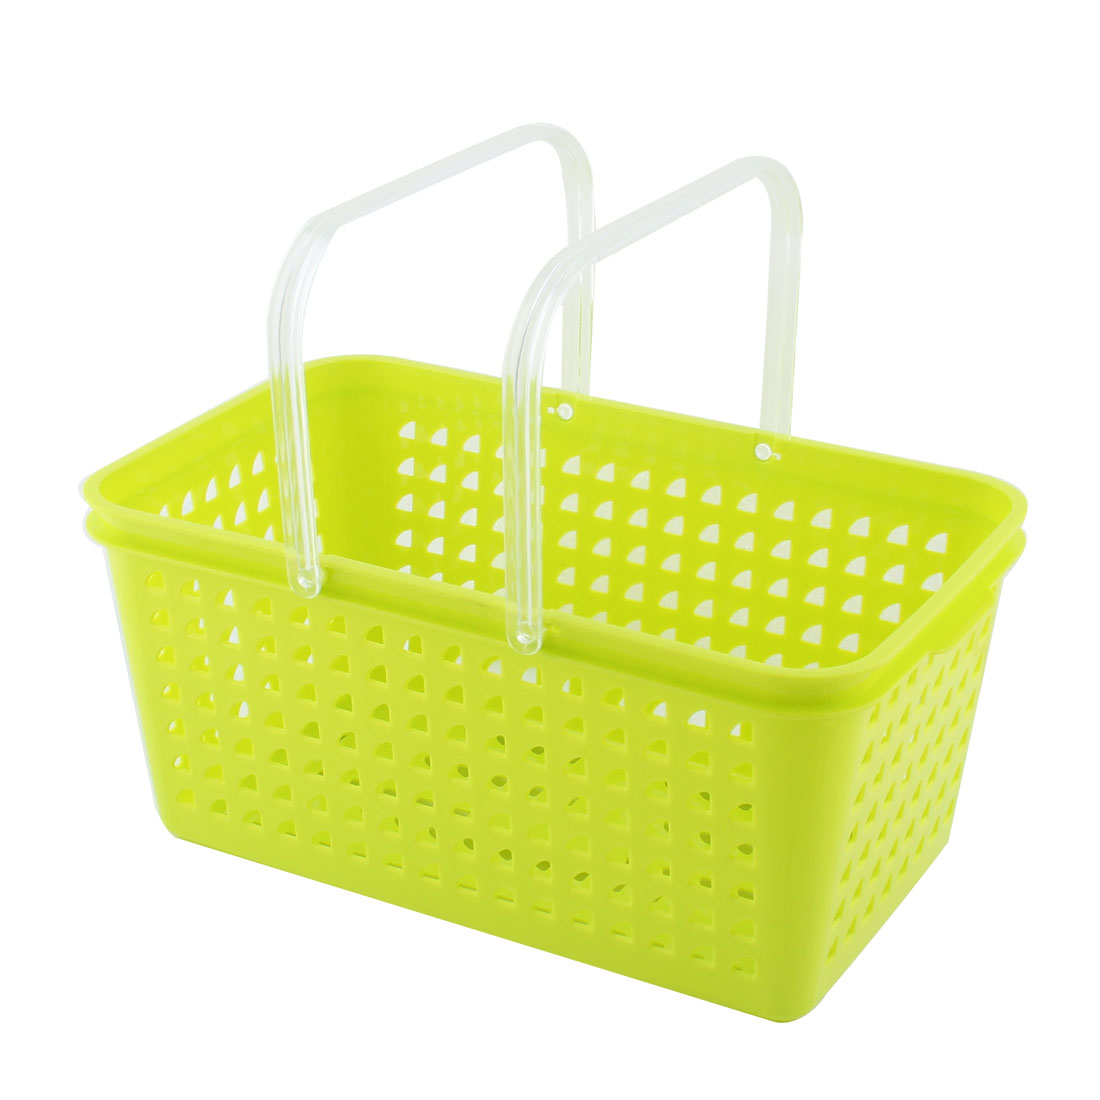 Unique Bargains Household Plastic Stationery Makeup Cosmetic Storage Organizer Basket Box Green